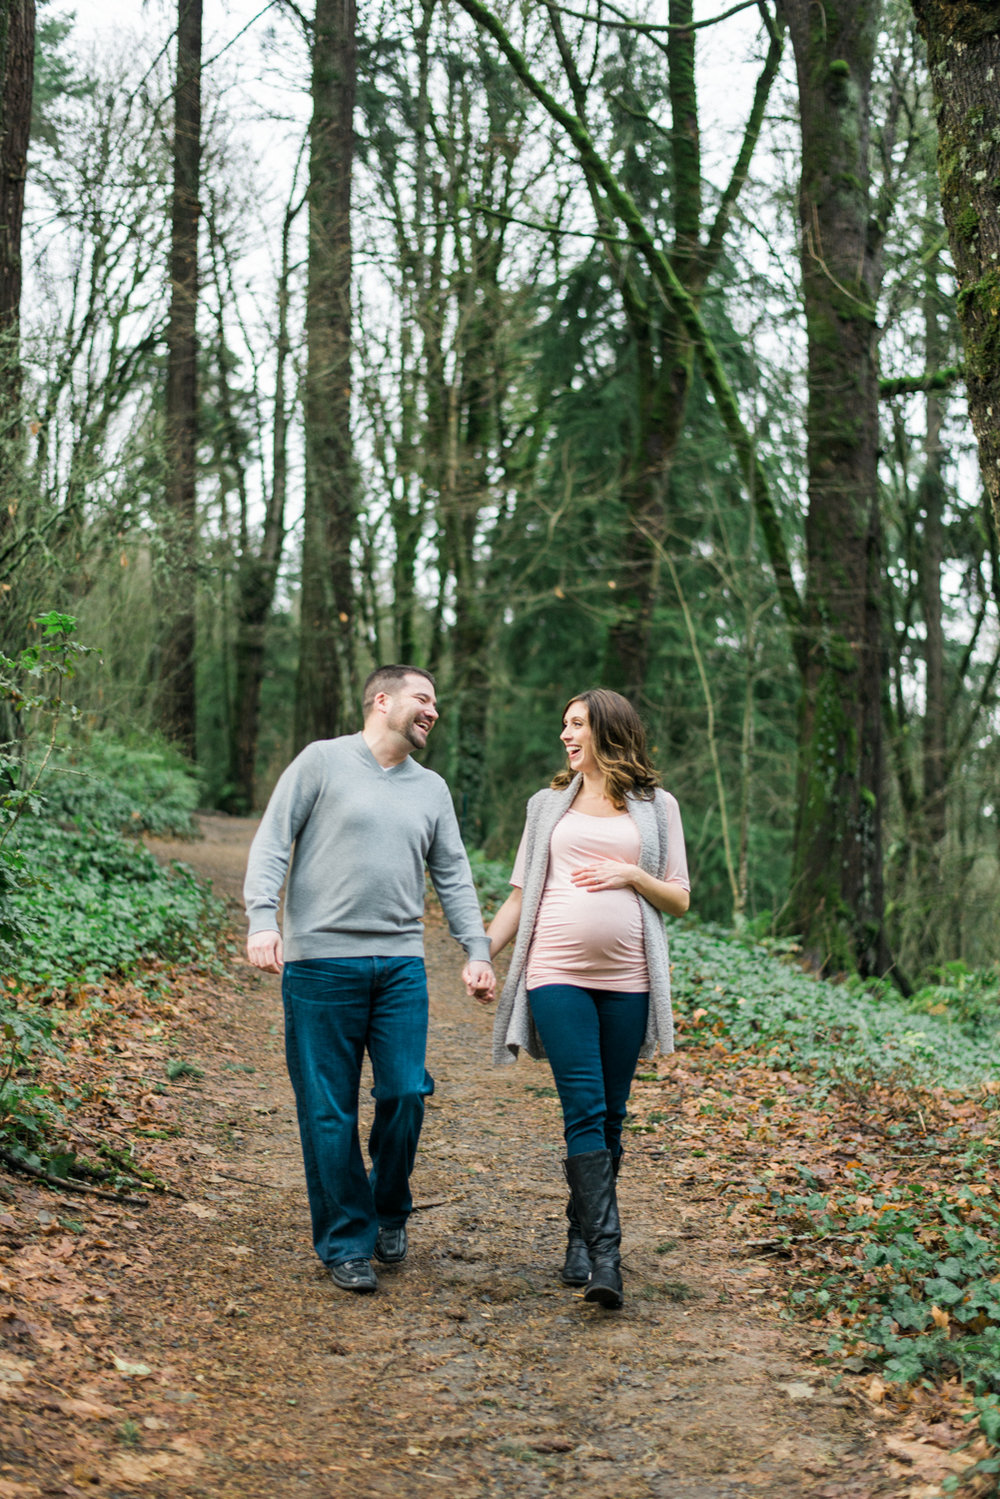 portland-maternity-photographer-washington-park-forest-woodland-shelley-marie-photo-5